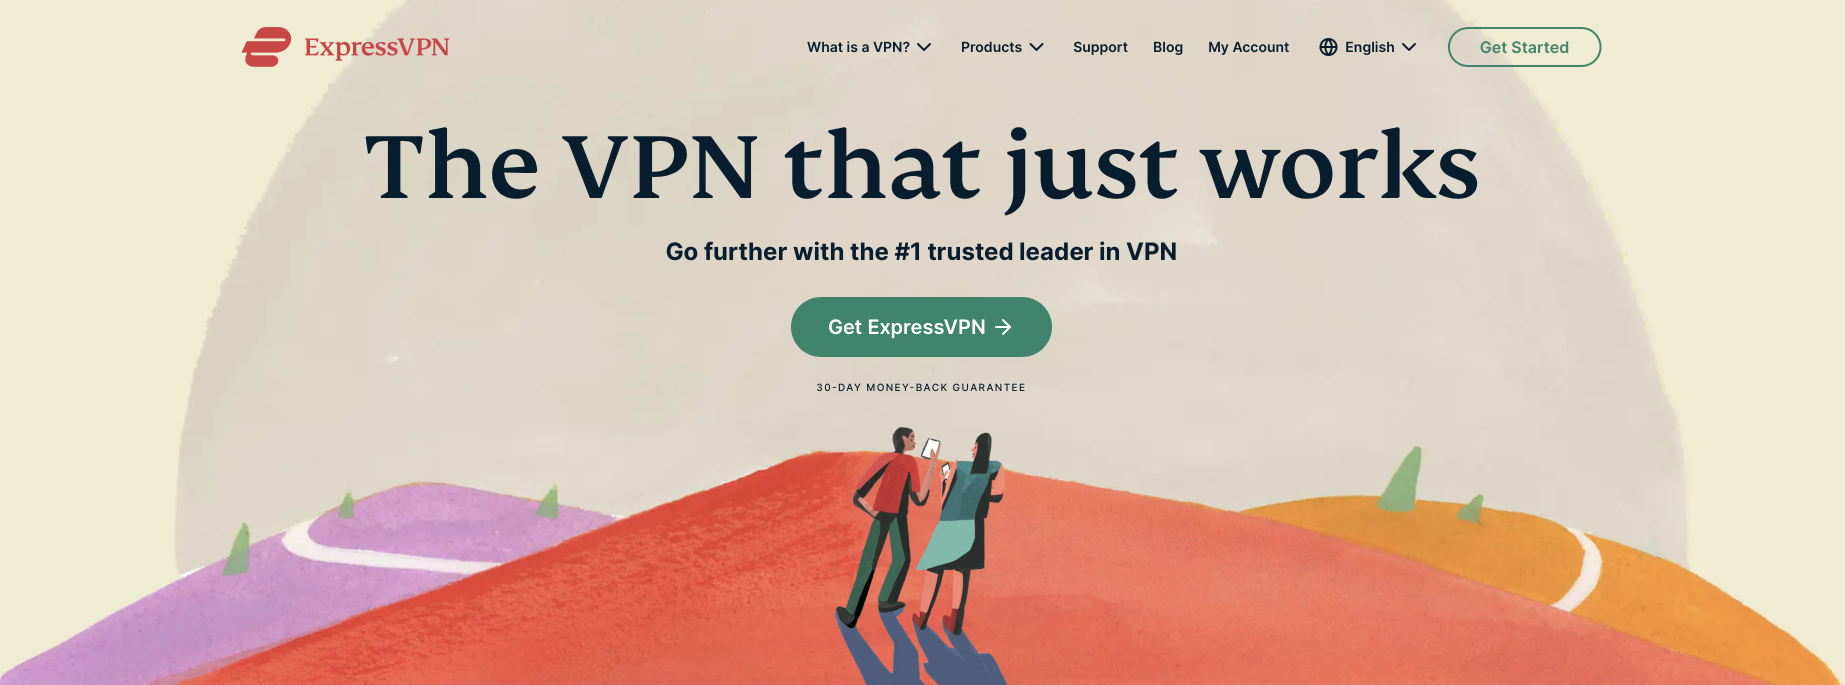 Consulting software: Express VPN